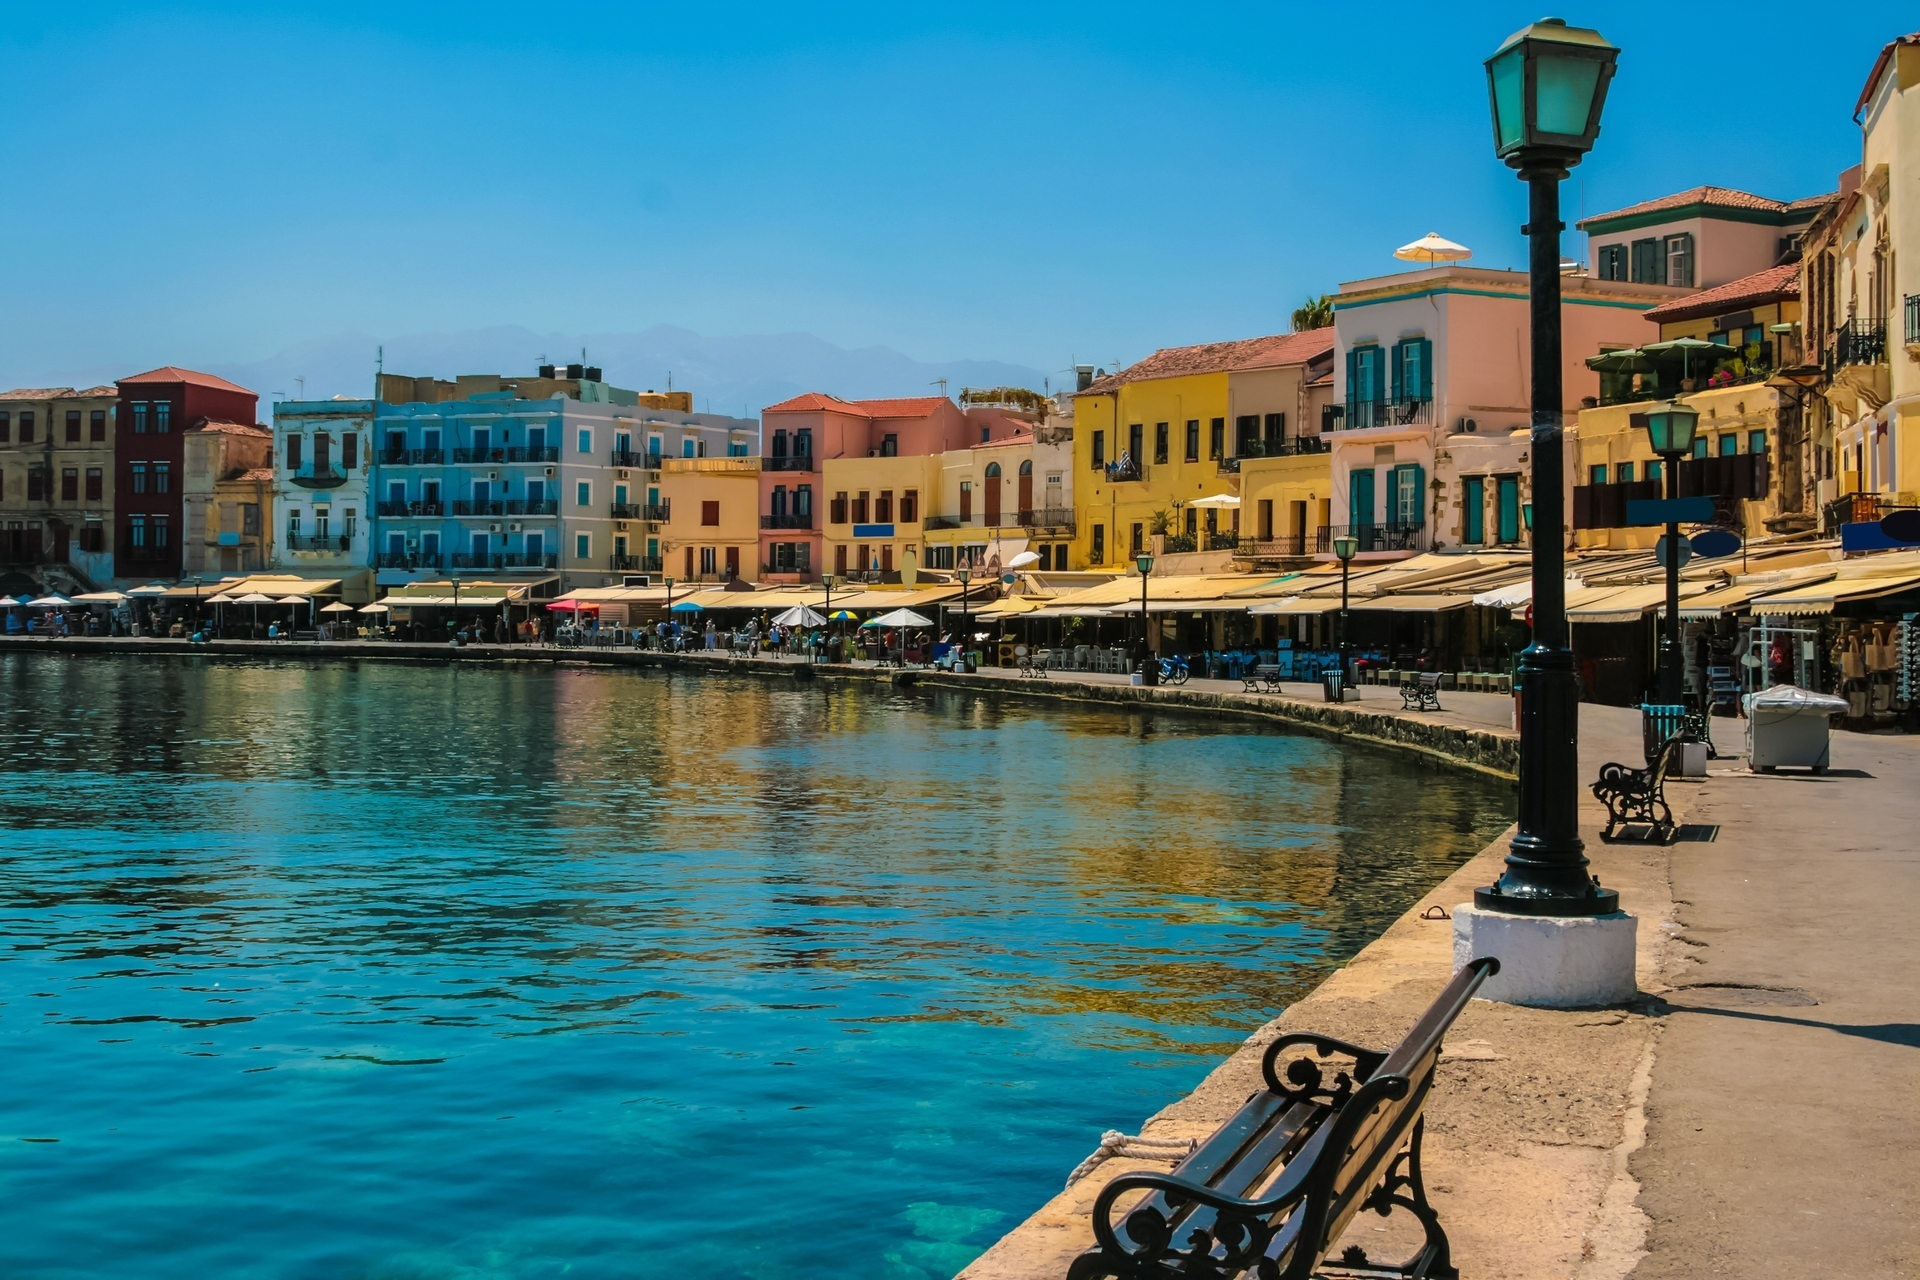 Old Venetian harbor aspect, Chania